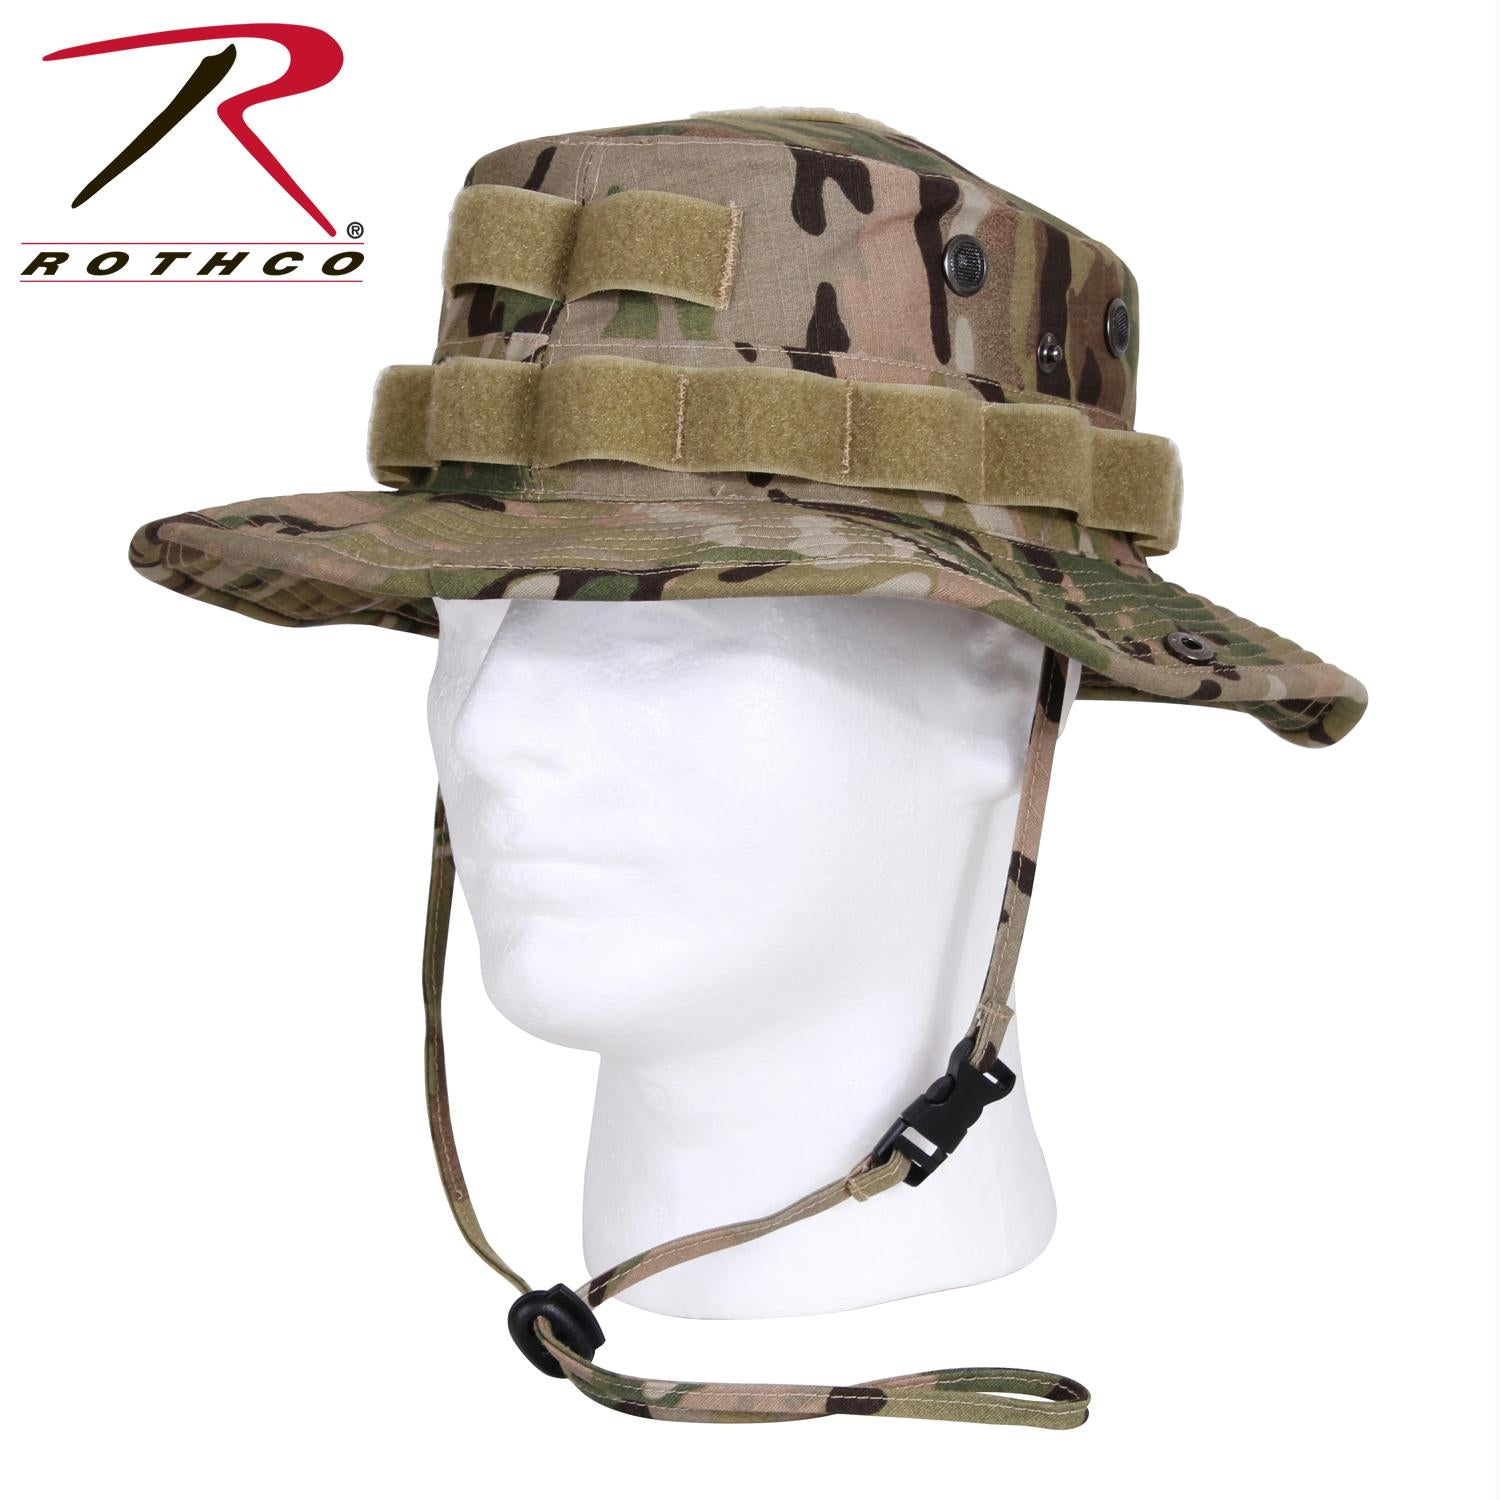 Rothco Tactical Boonie Hat - MultiCam / 7 3/4